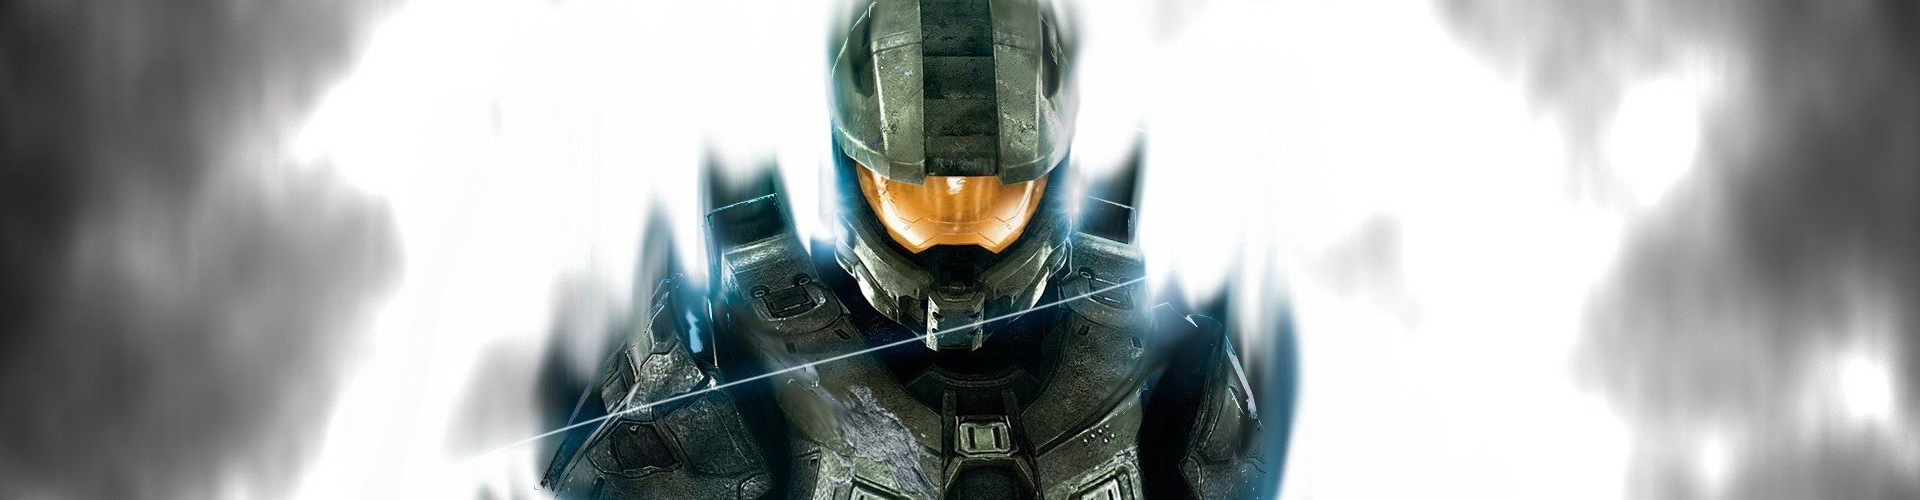 halo-ranking-header.jpg